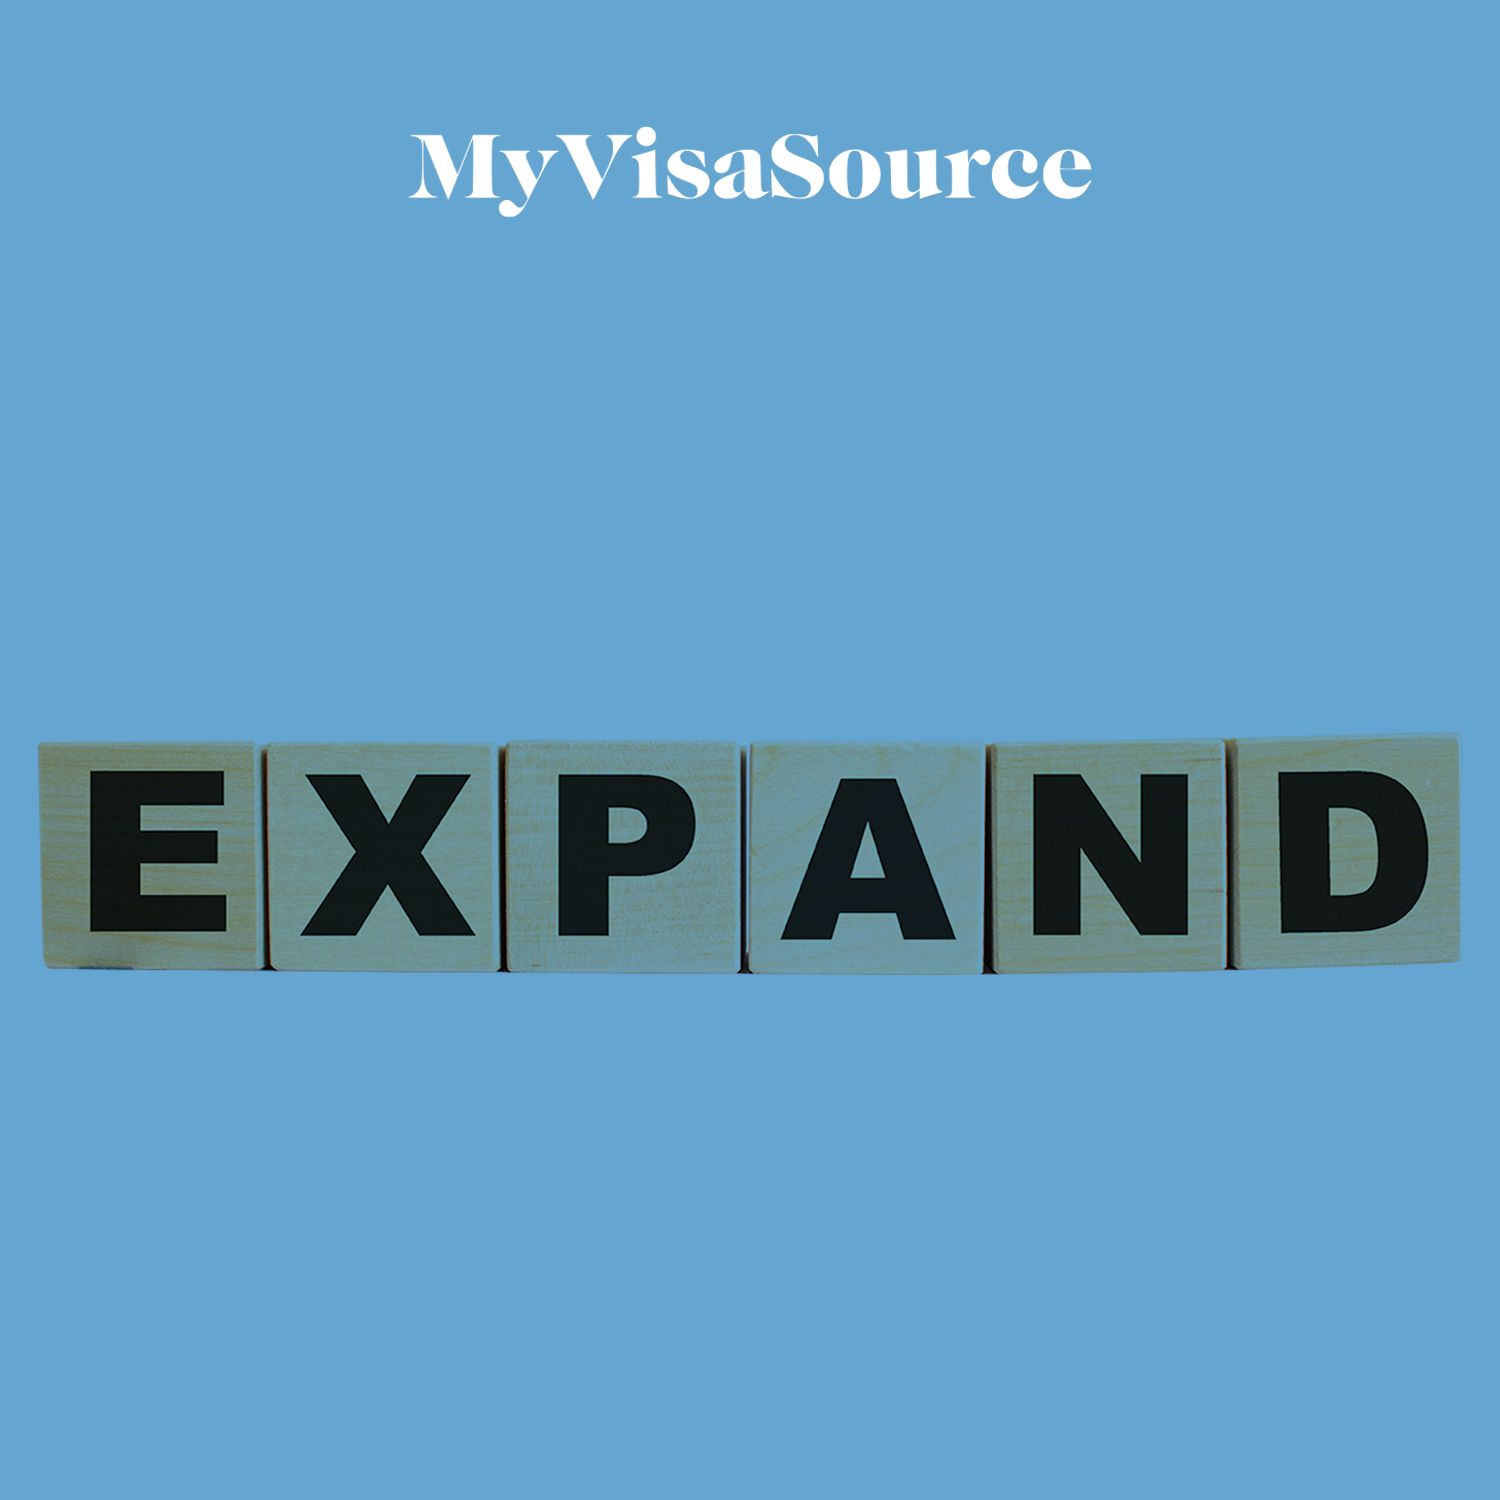 wooden blocks spelling out the word expand my visa source